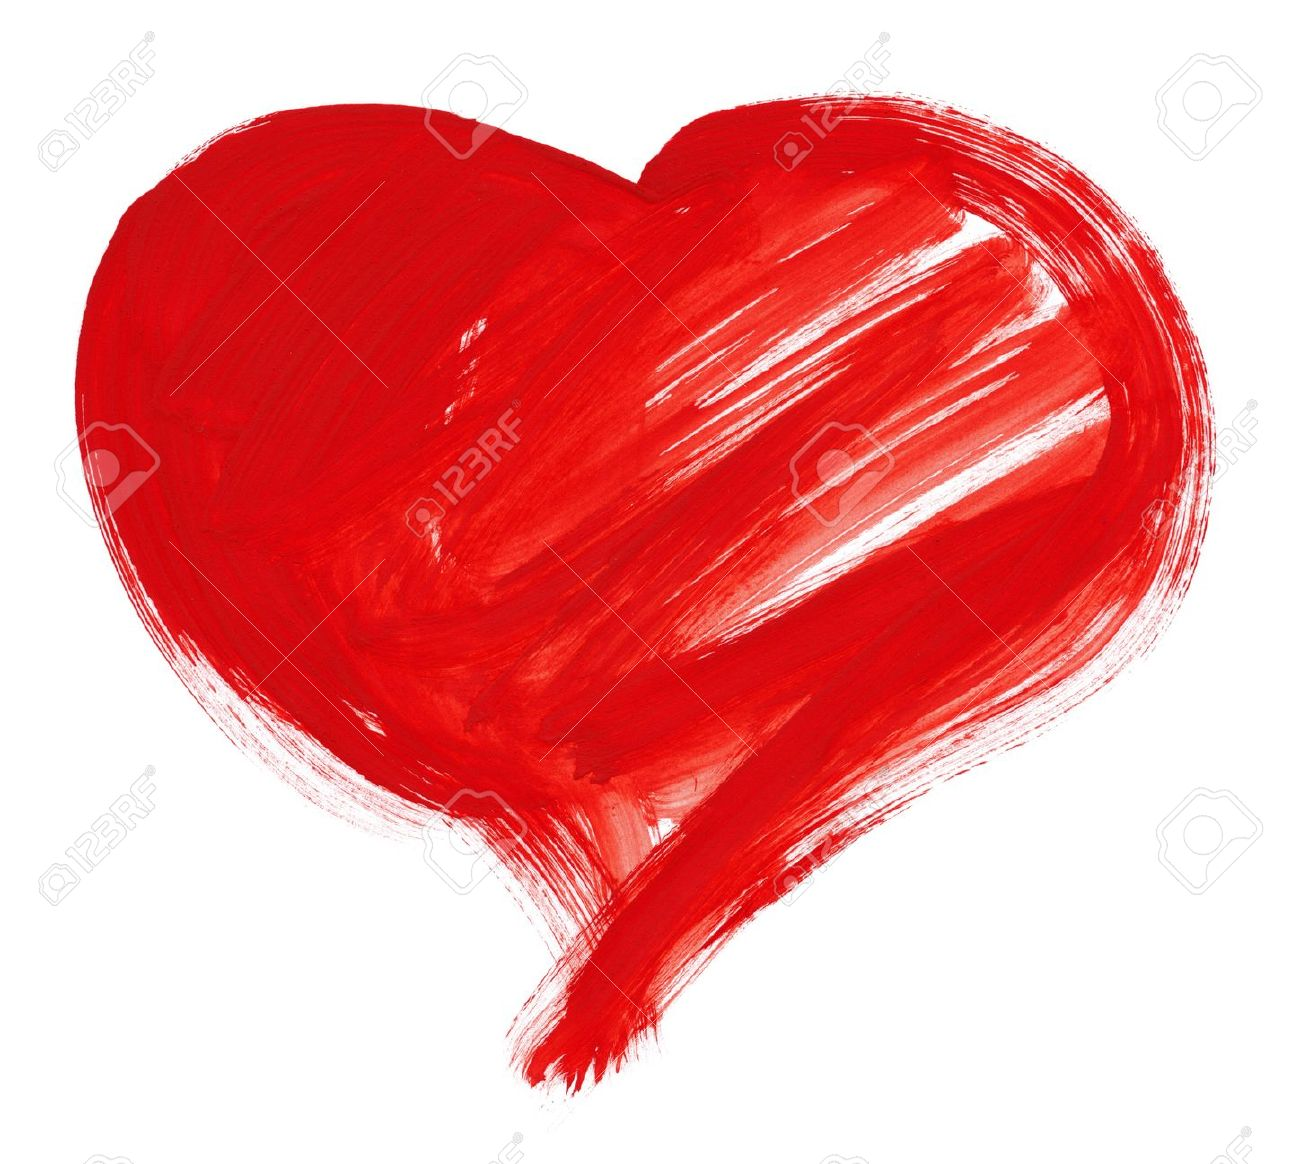 1300x1164 Red Big Heart Shape. Watercolor Drawing Stock Photo, Picture